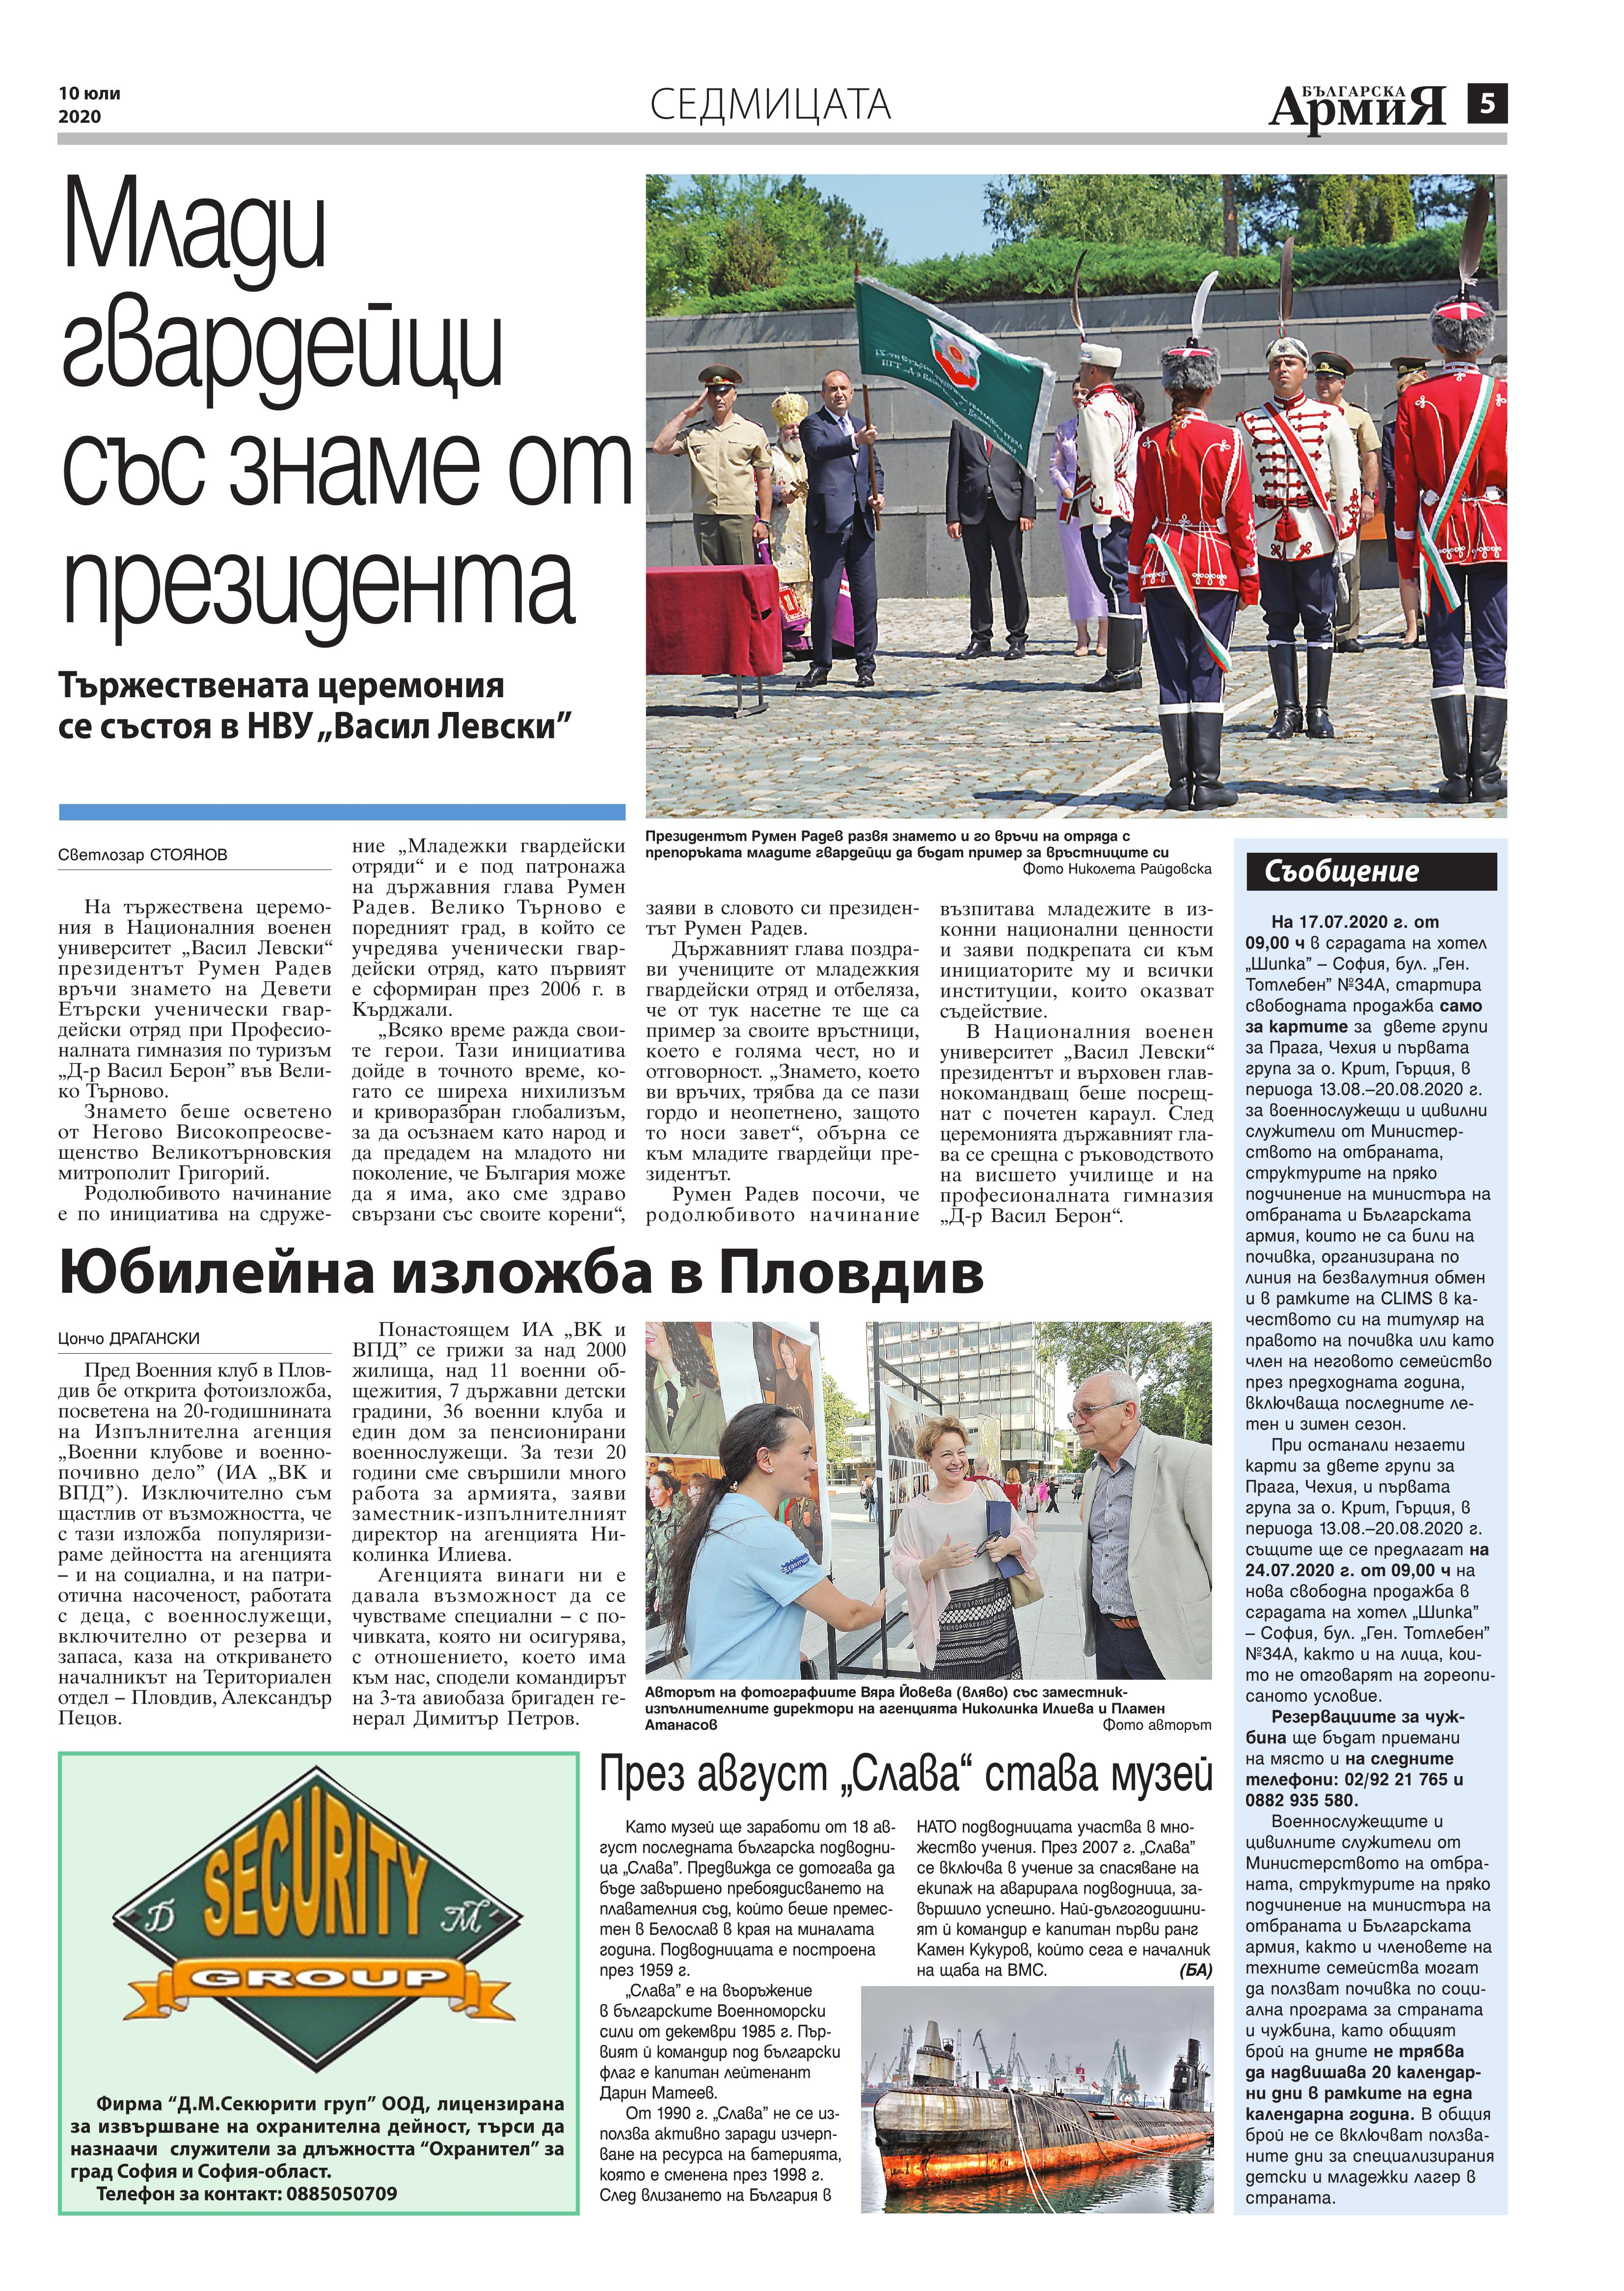 https://armymedia.bg/wp-content/uploads/2015/06/05.page1_-142.jpg